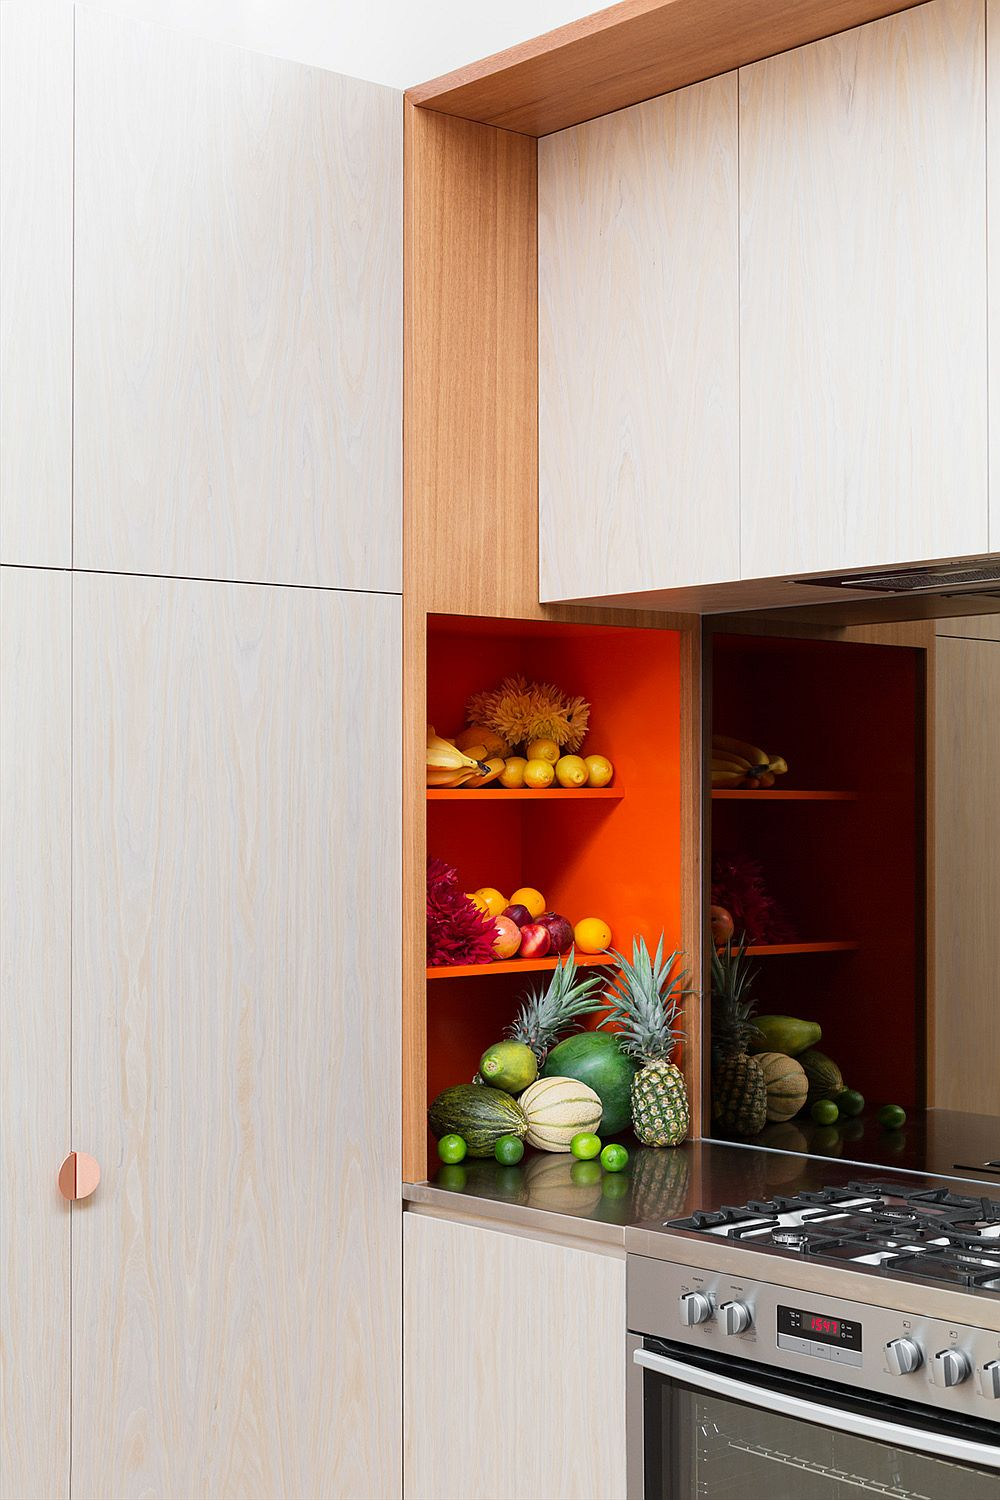 Creative use of orange as accent hue in the kitchen